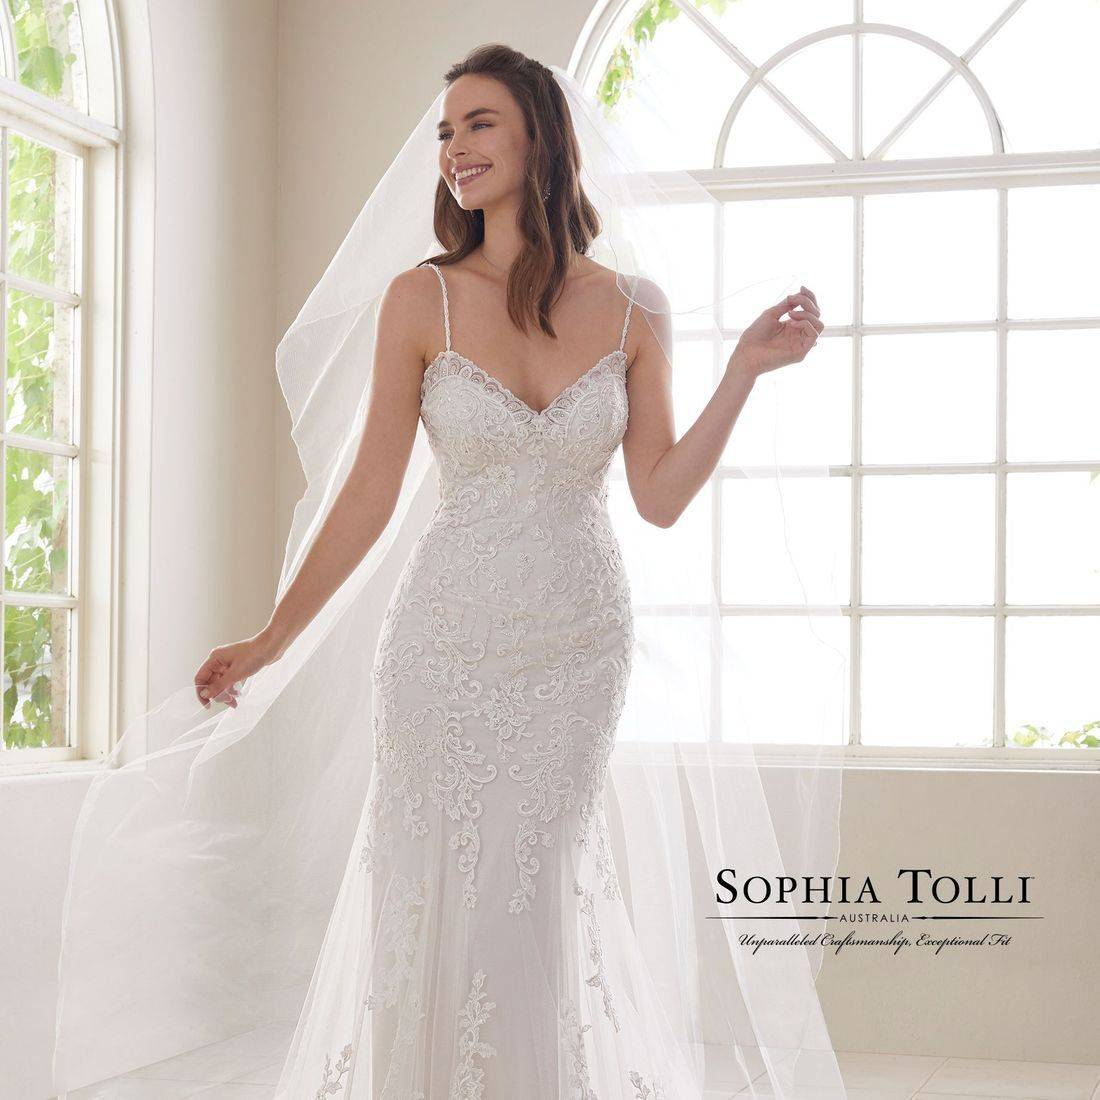 sophia tolli, sophia tolli wedding dress, lace wedding dress, wedding dress with criss cross back, spaghetti straps, sparkle, sexy back, dipped back, sweetheart neck, fitted wedding dress,